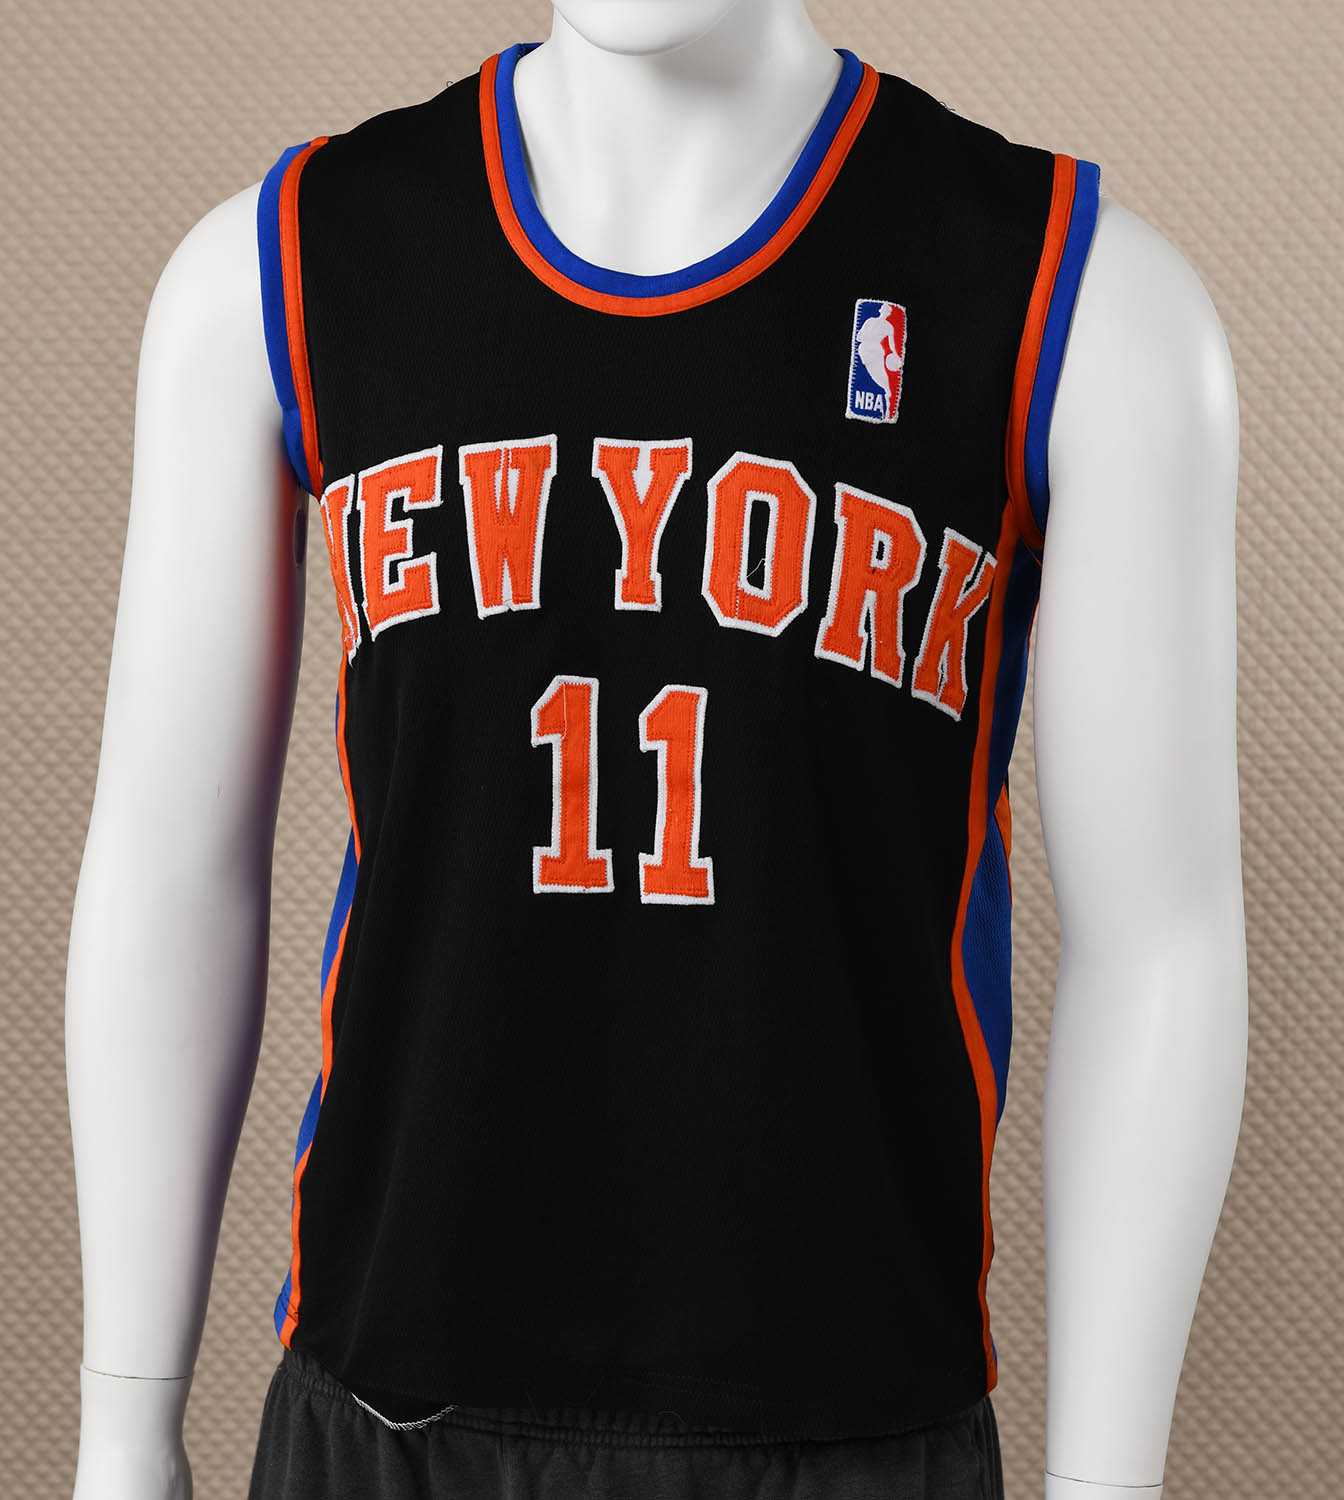 6f5a72eee New York Knicks Basketball Jersey - SportsHistoryCollectibles.com